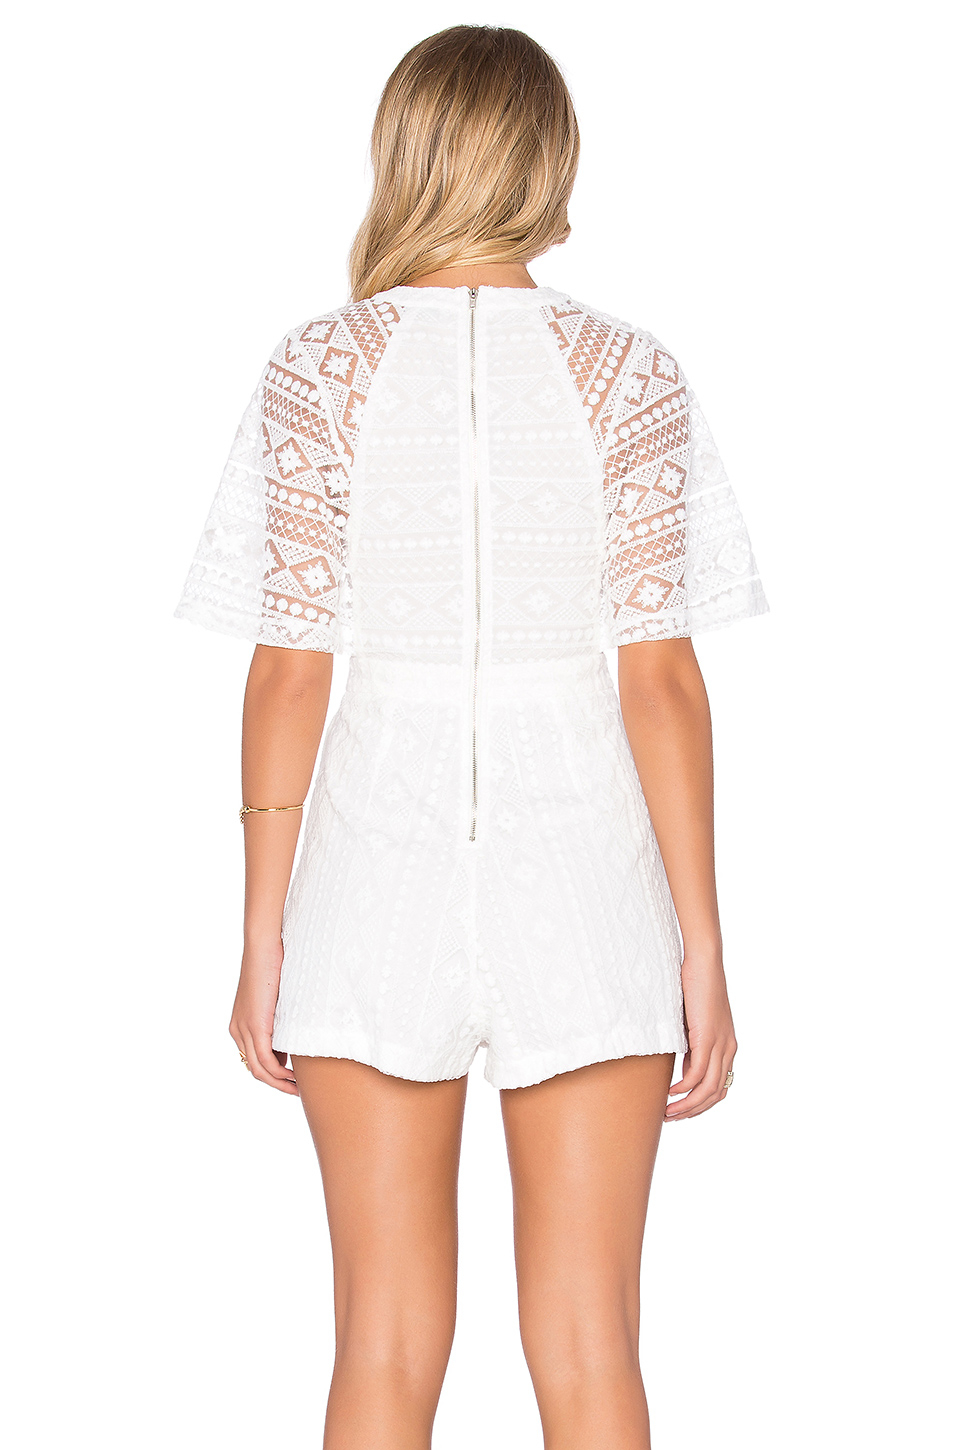 e5a3385c75 Lyst - Tiger Mist Southern Belle Playsuit in White